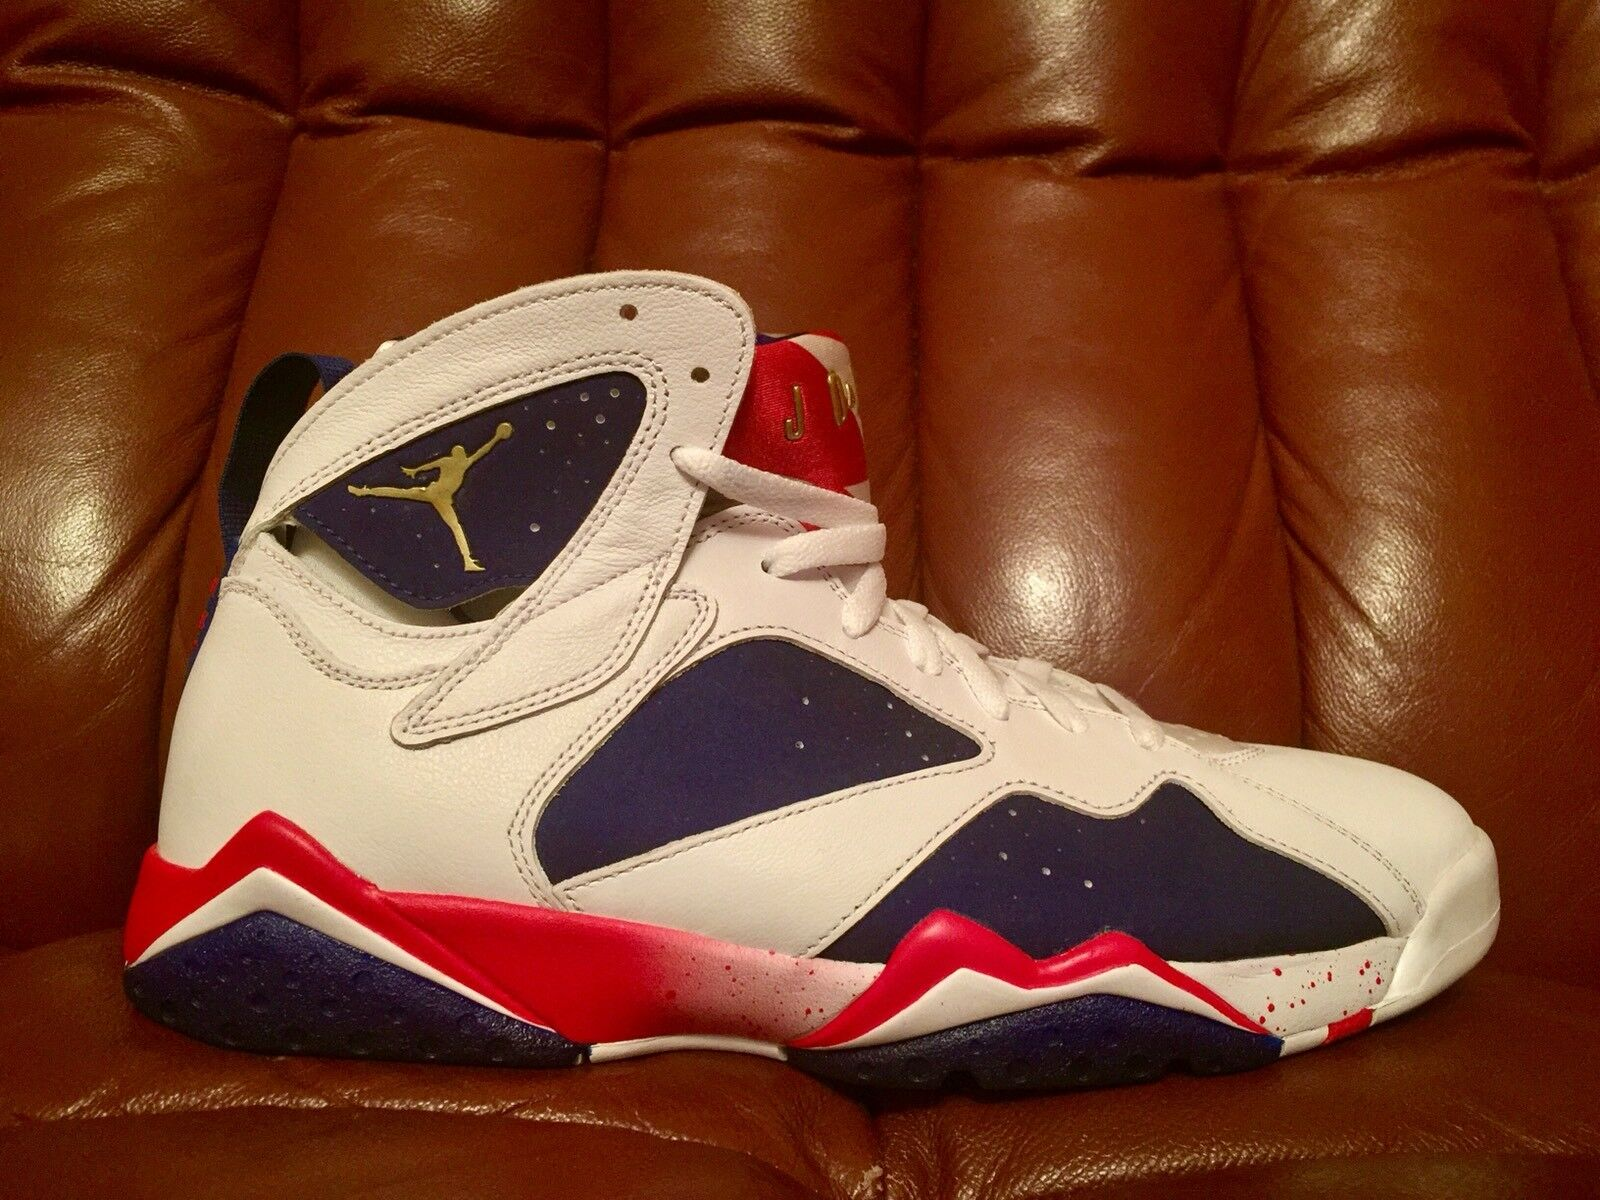 The latest discount shoes for men and women DS Nike Air Jordan VII 7 Retro Tinker Alternate Olympic Men's Comfortable